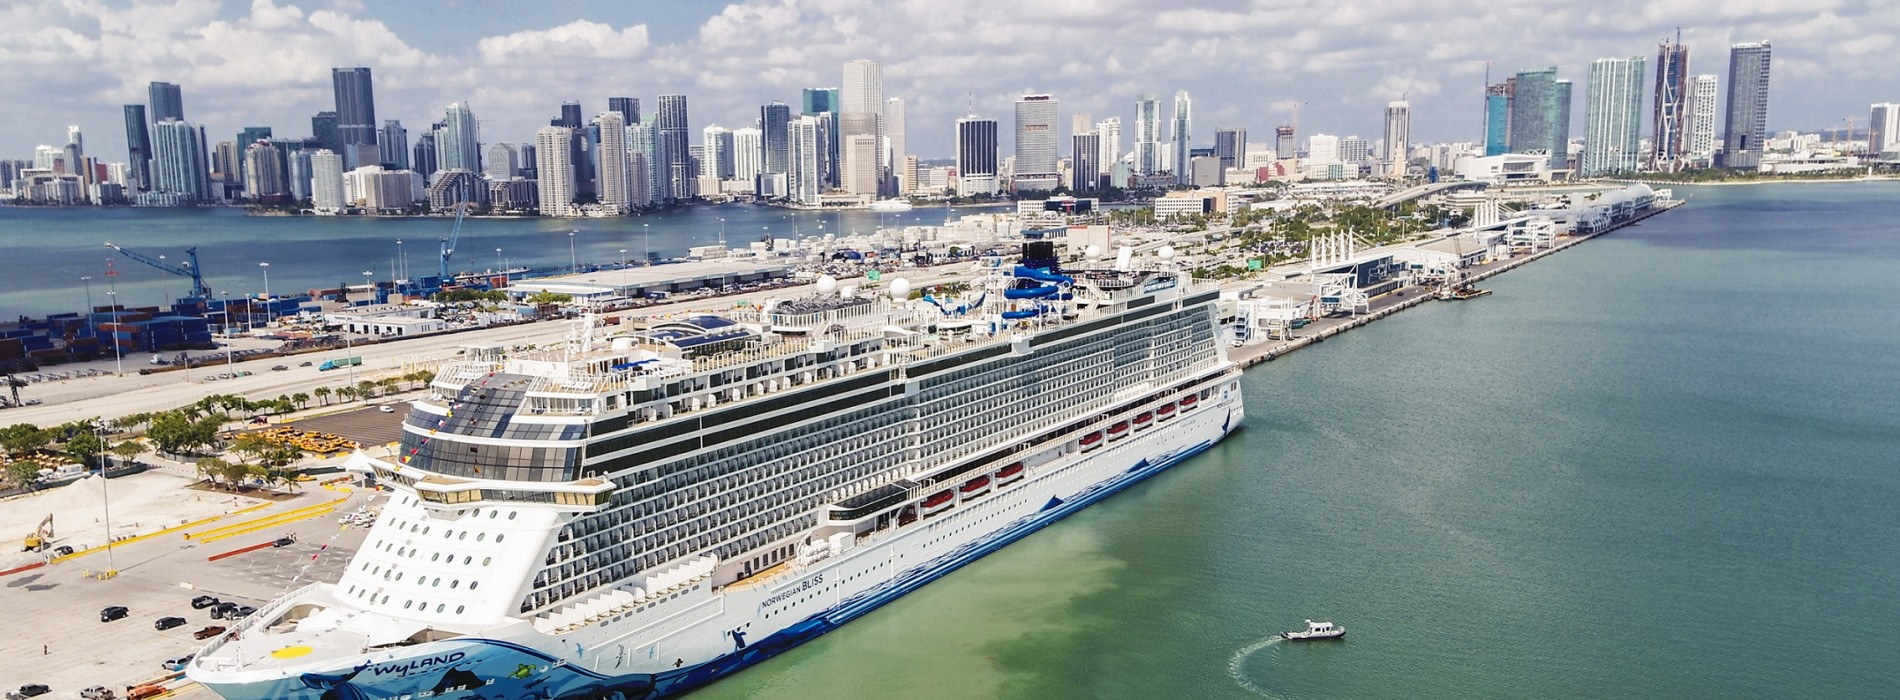 Norwegian Bliss becomes largest Passenger Ship to Traverse Panama Canal